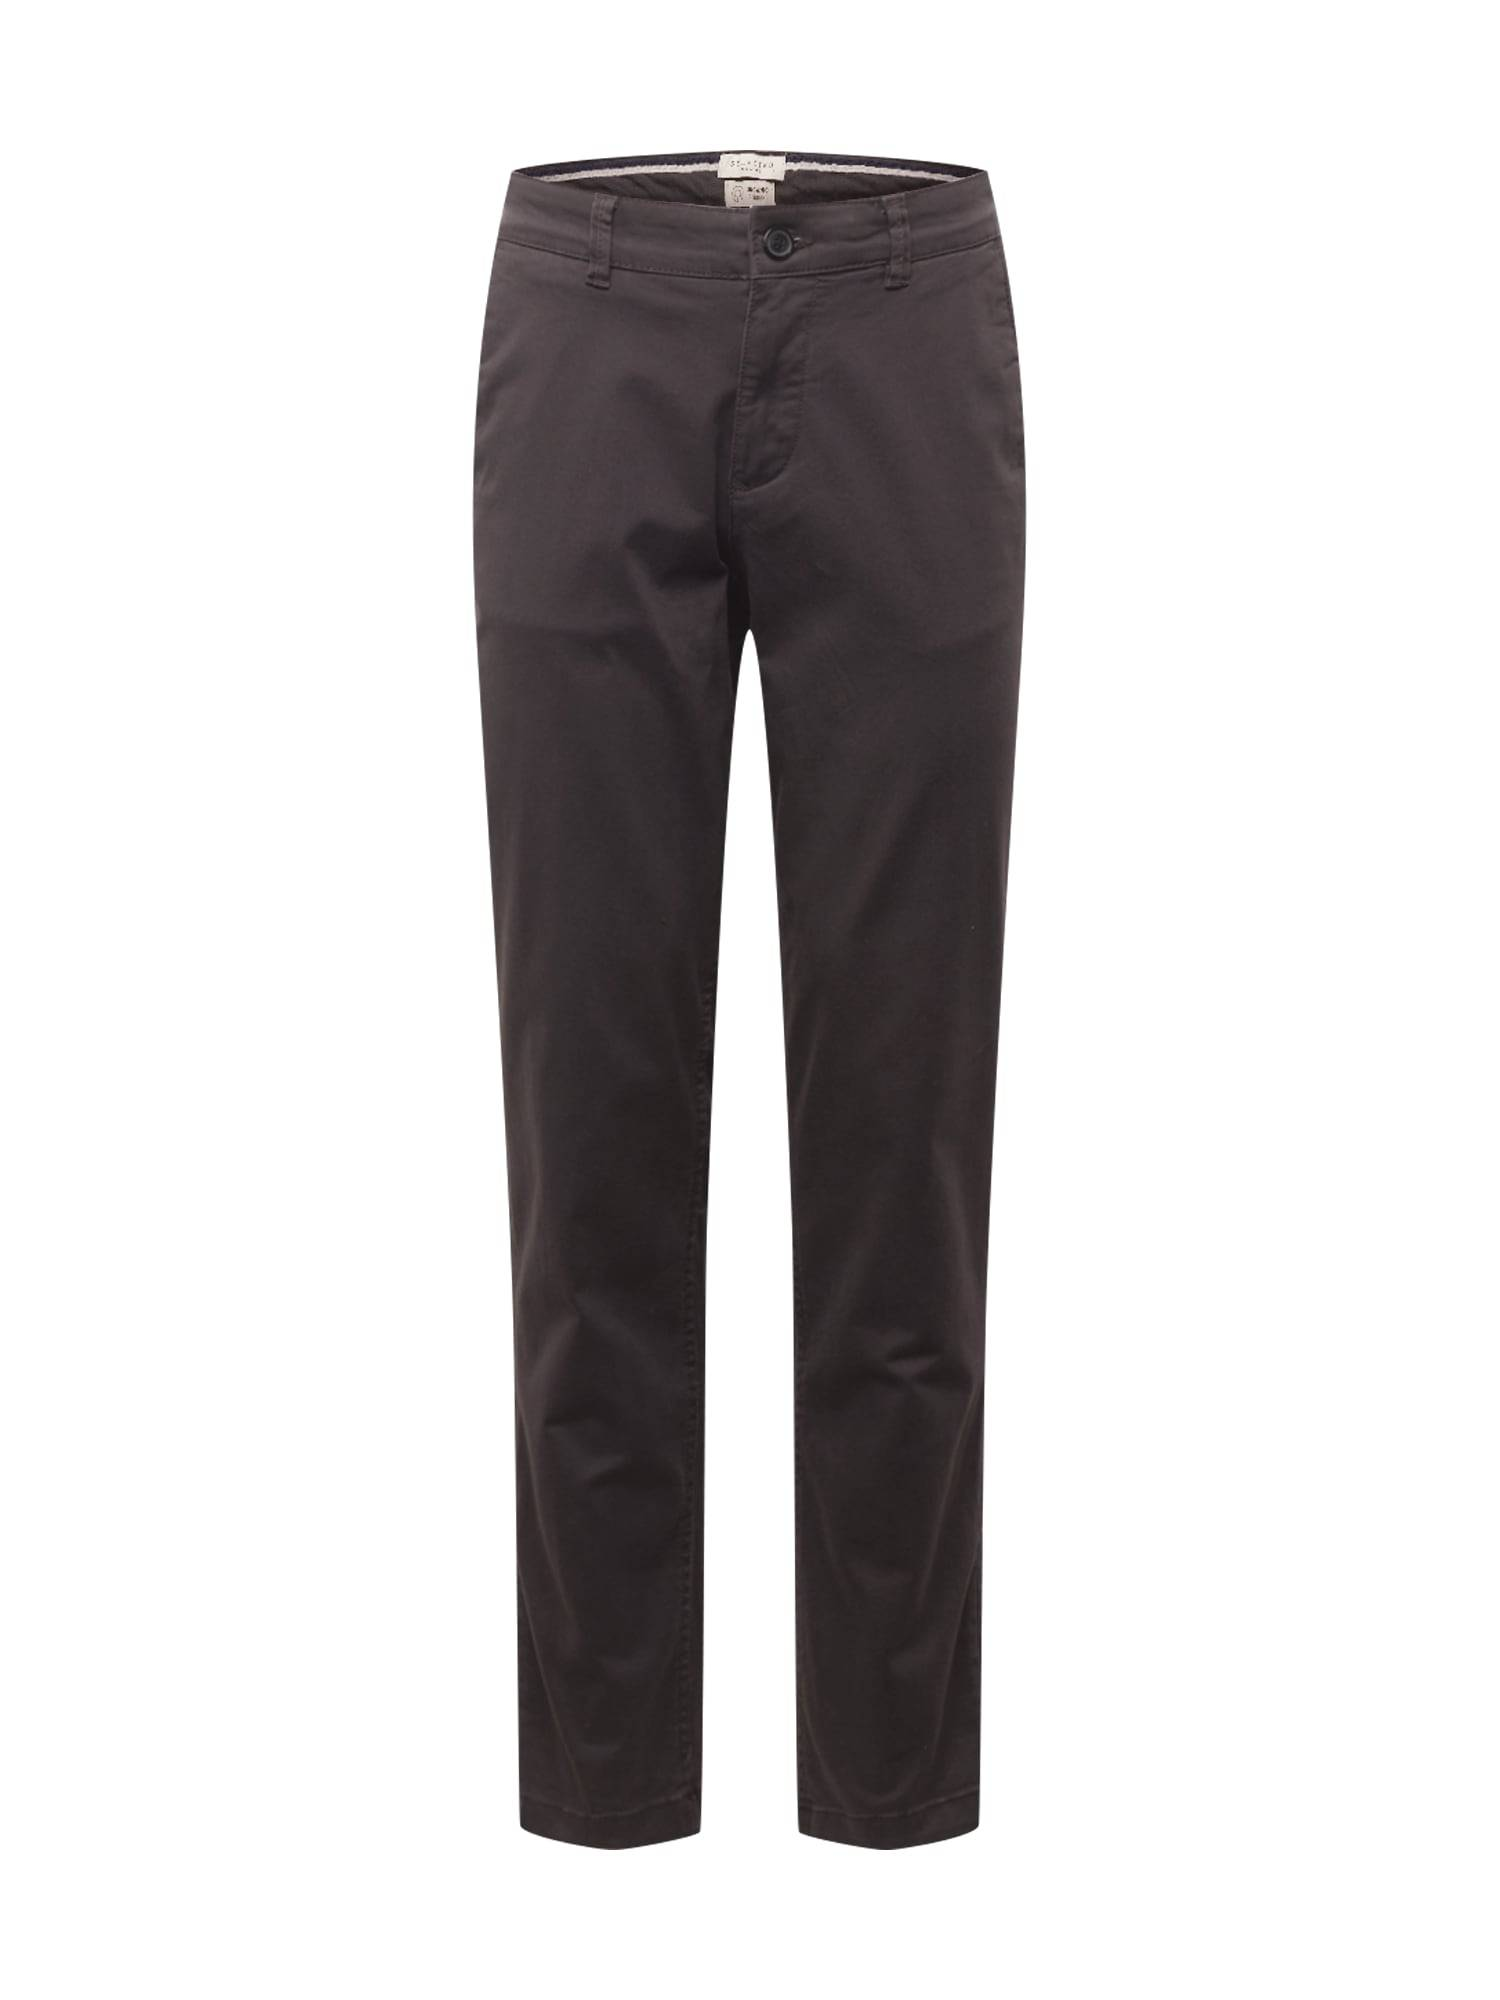 SELECTED HOMME Pantalon chino 'NEW PARIS'  - Gris - Taille: 36 - male